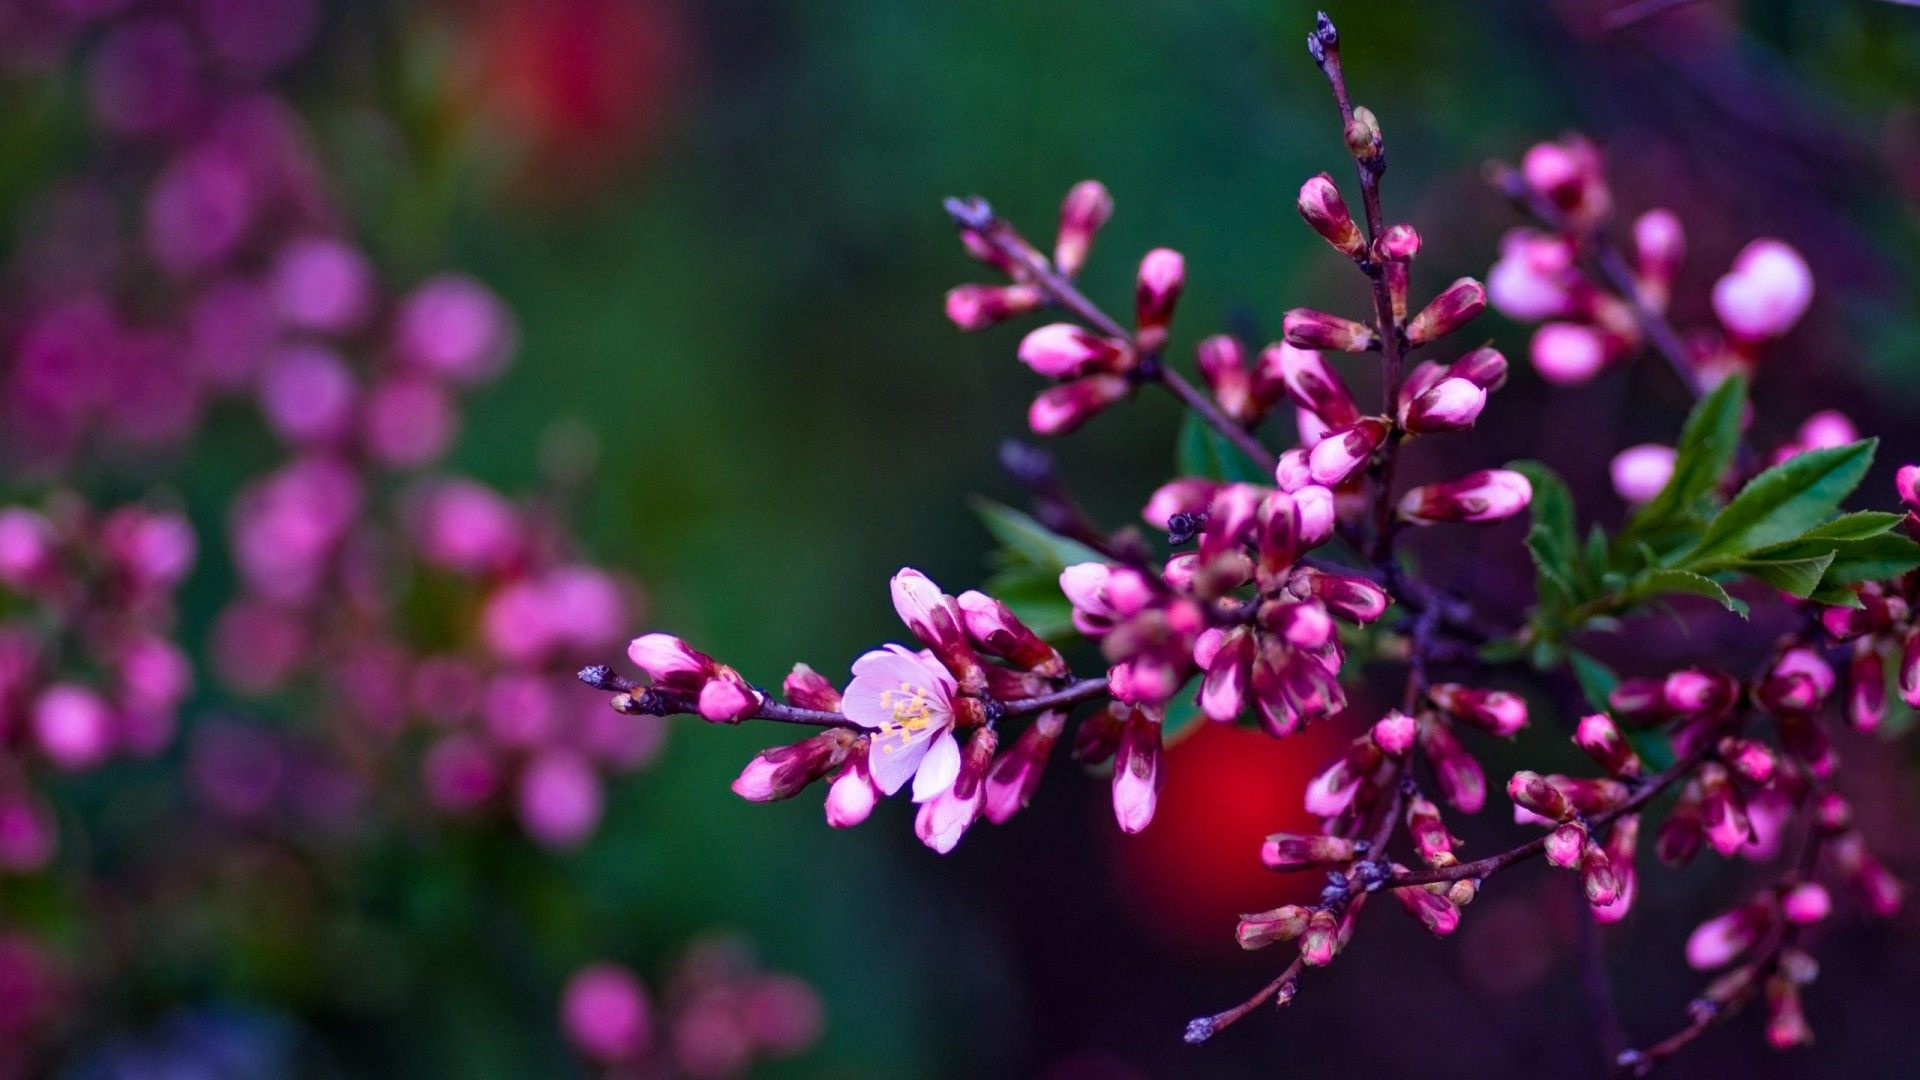 Spring Flowers Wallpaper Hd | Natures Wallpapers ...